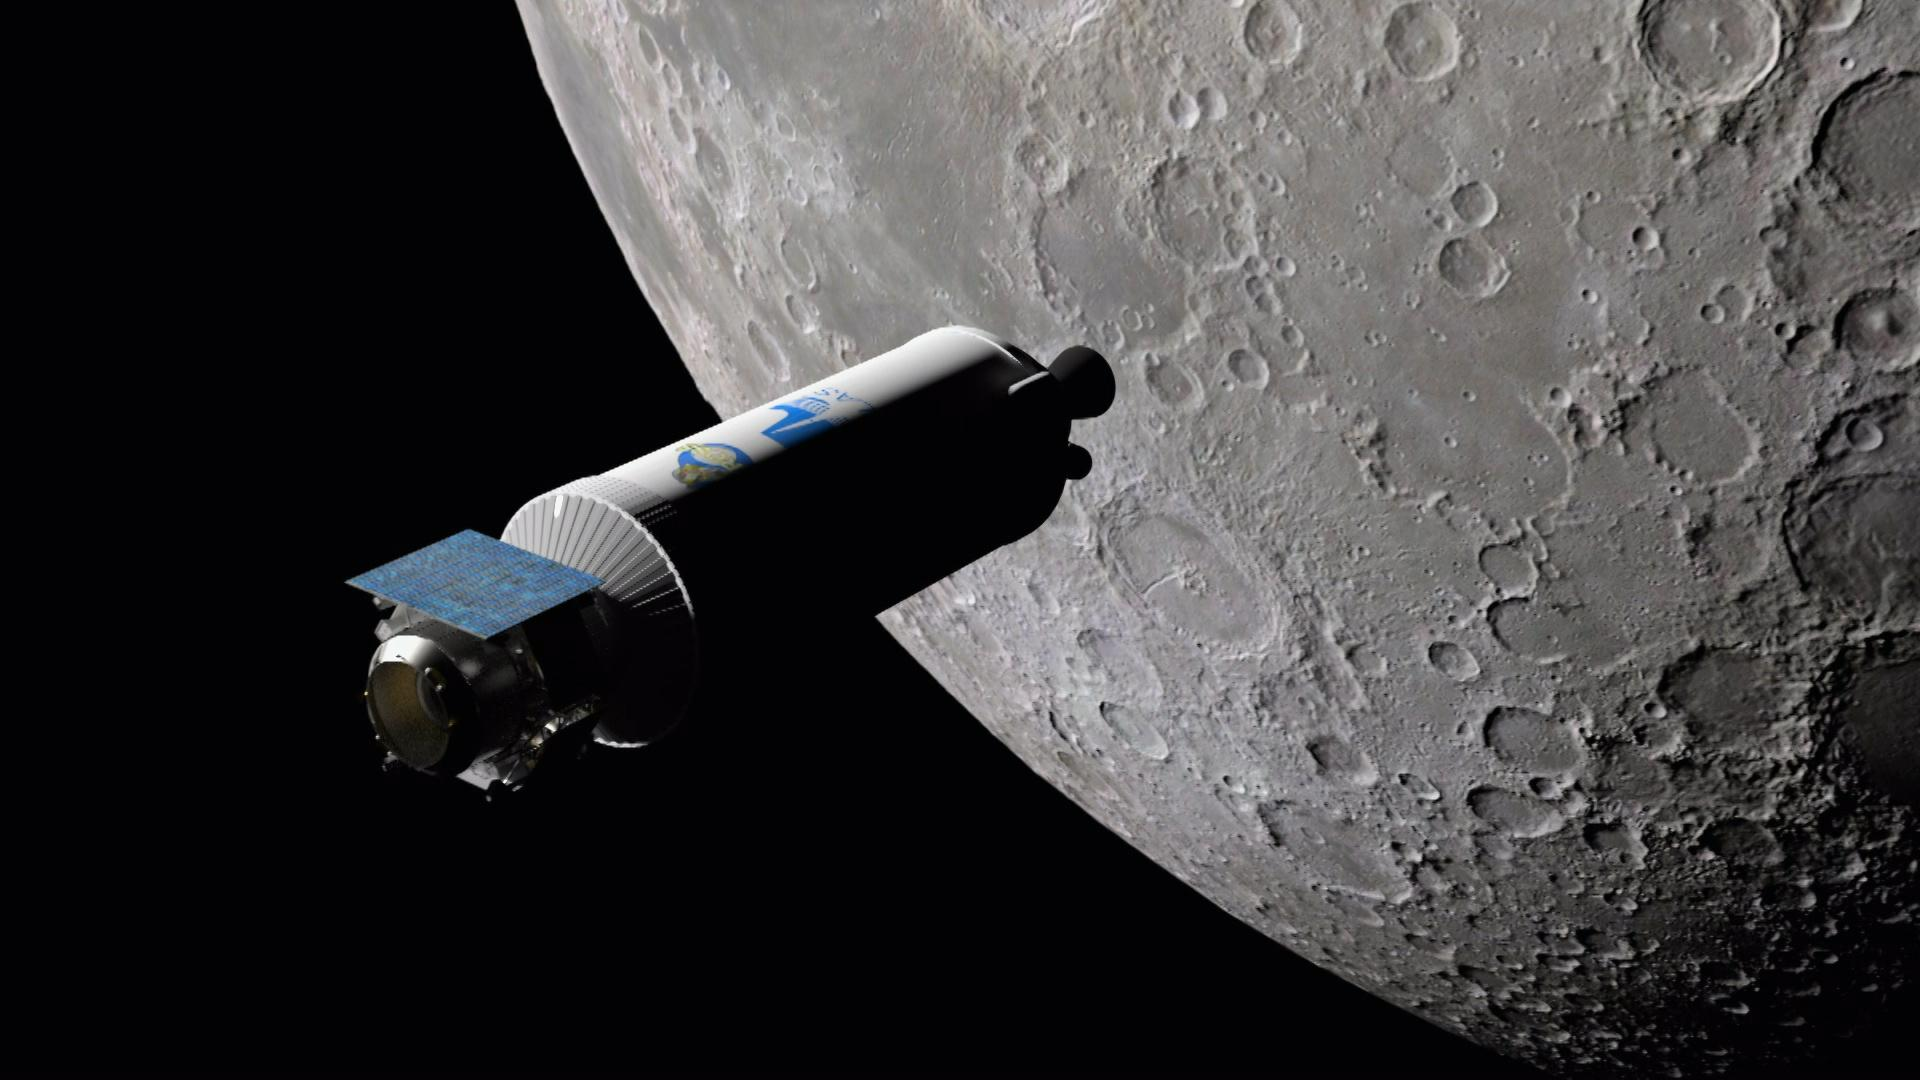 Scientists Launch Rocket into the Moon to Find Water Hero